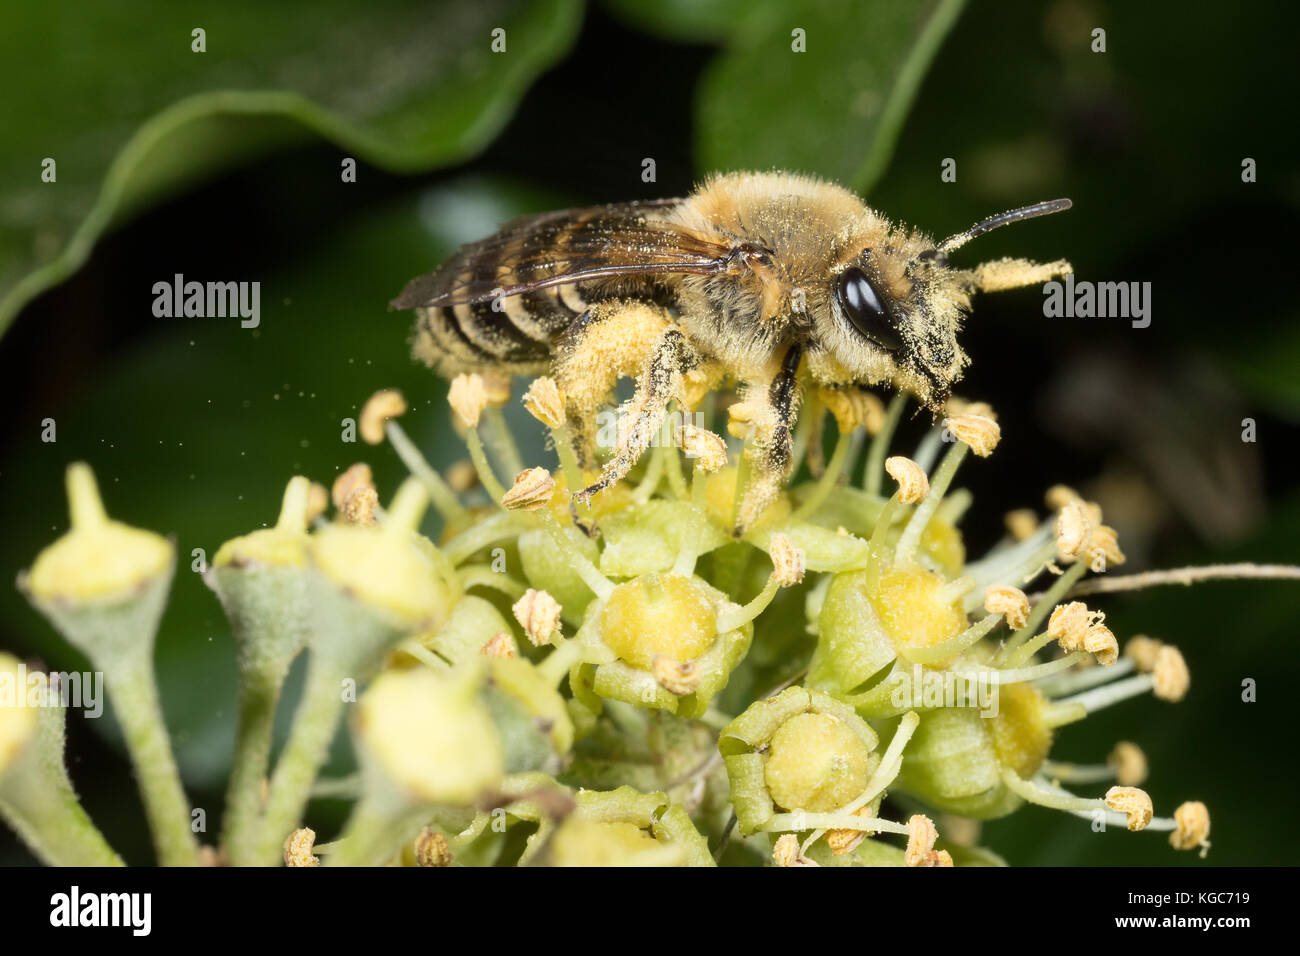 Ivy bee - a recent arrival to the UK and a late pollinator emerging in Autumn - laden with pollen, which is blowing - Stock Image